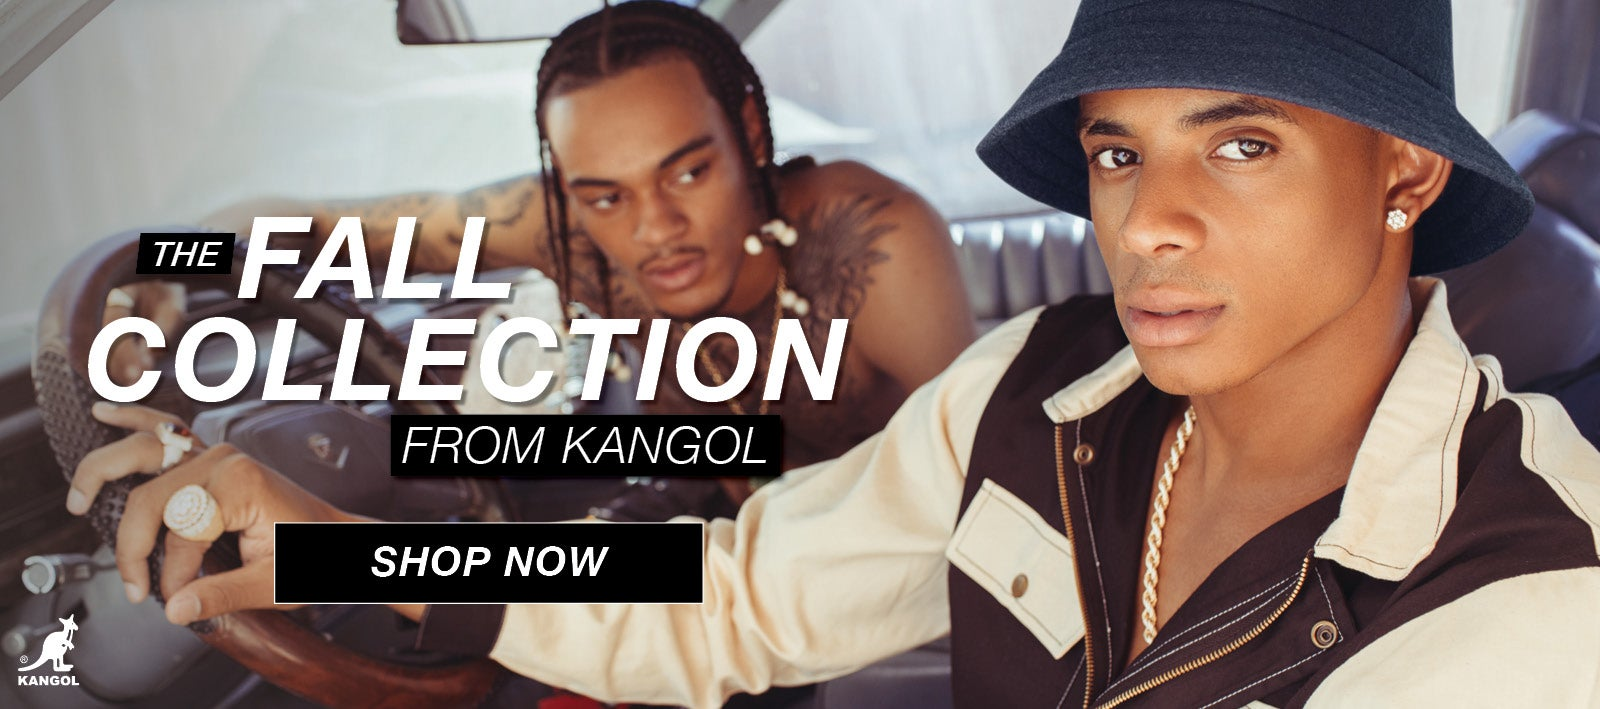 New Fall Collection From Kangol